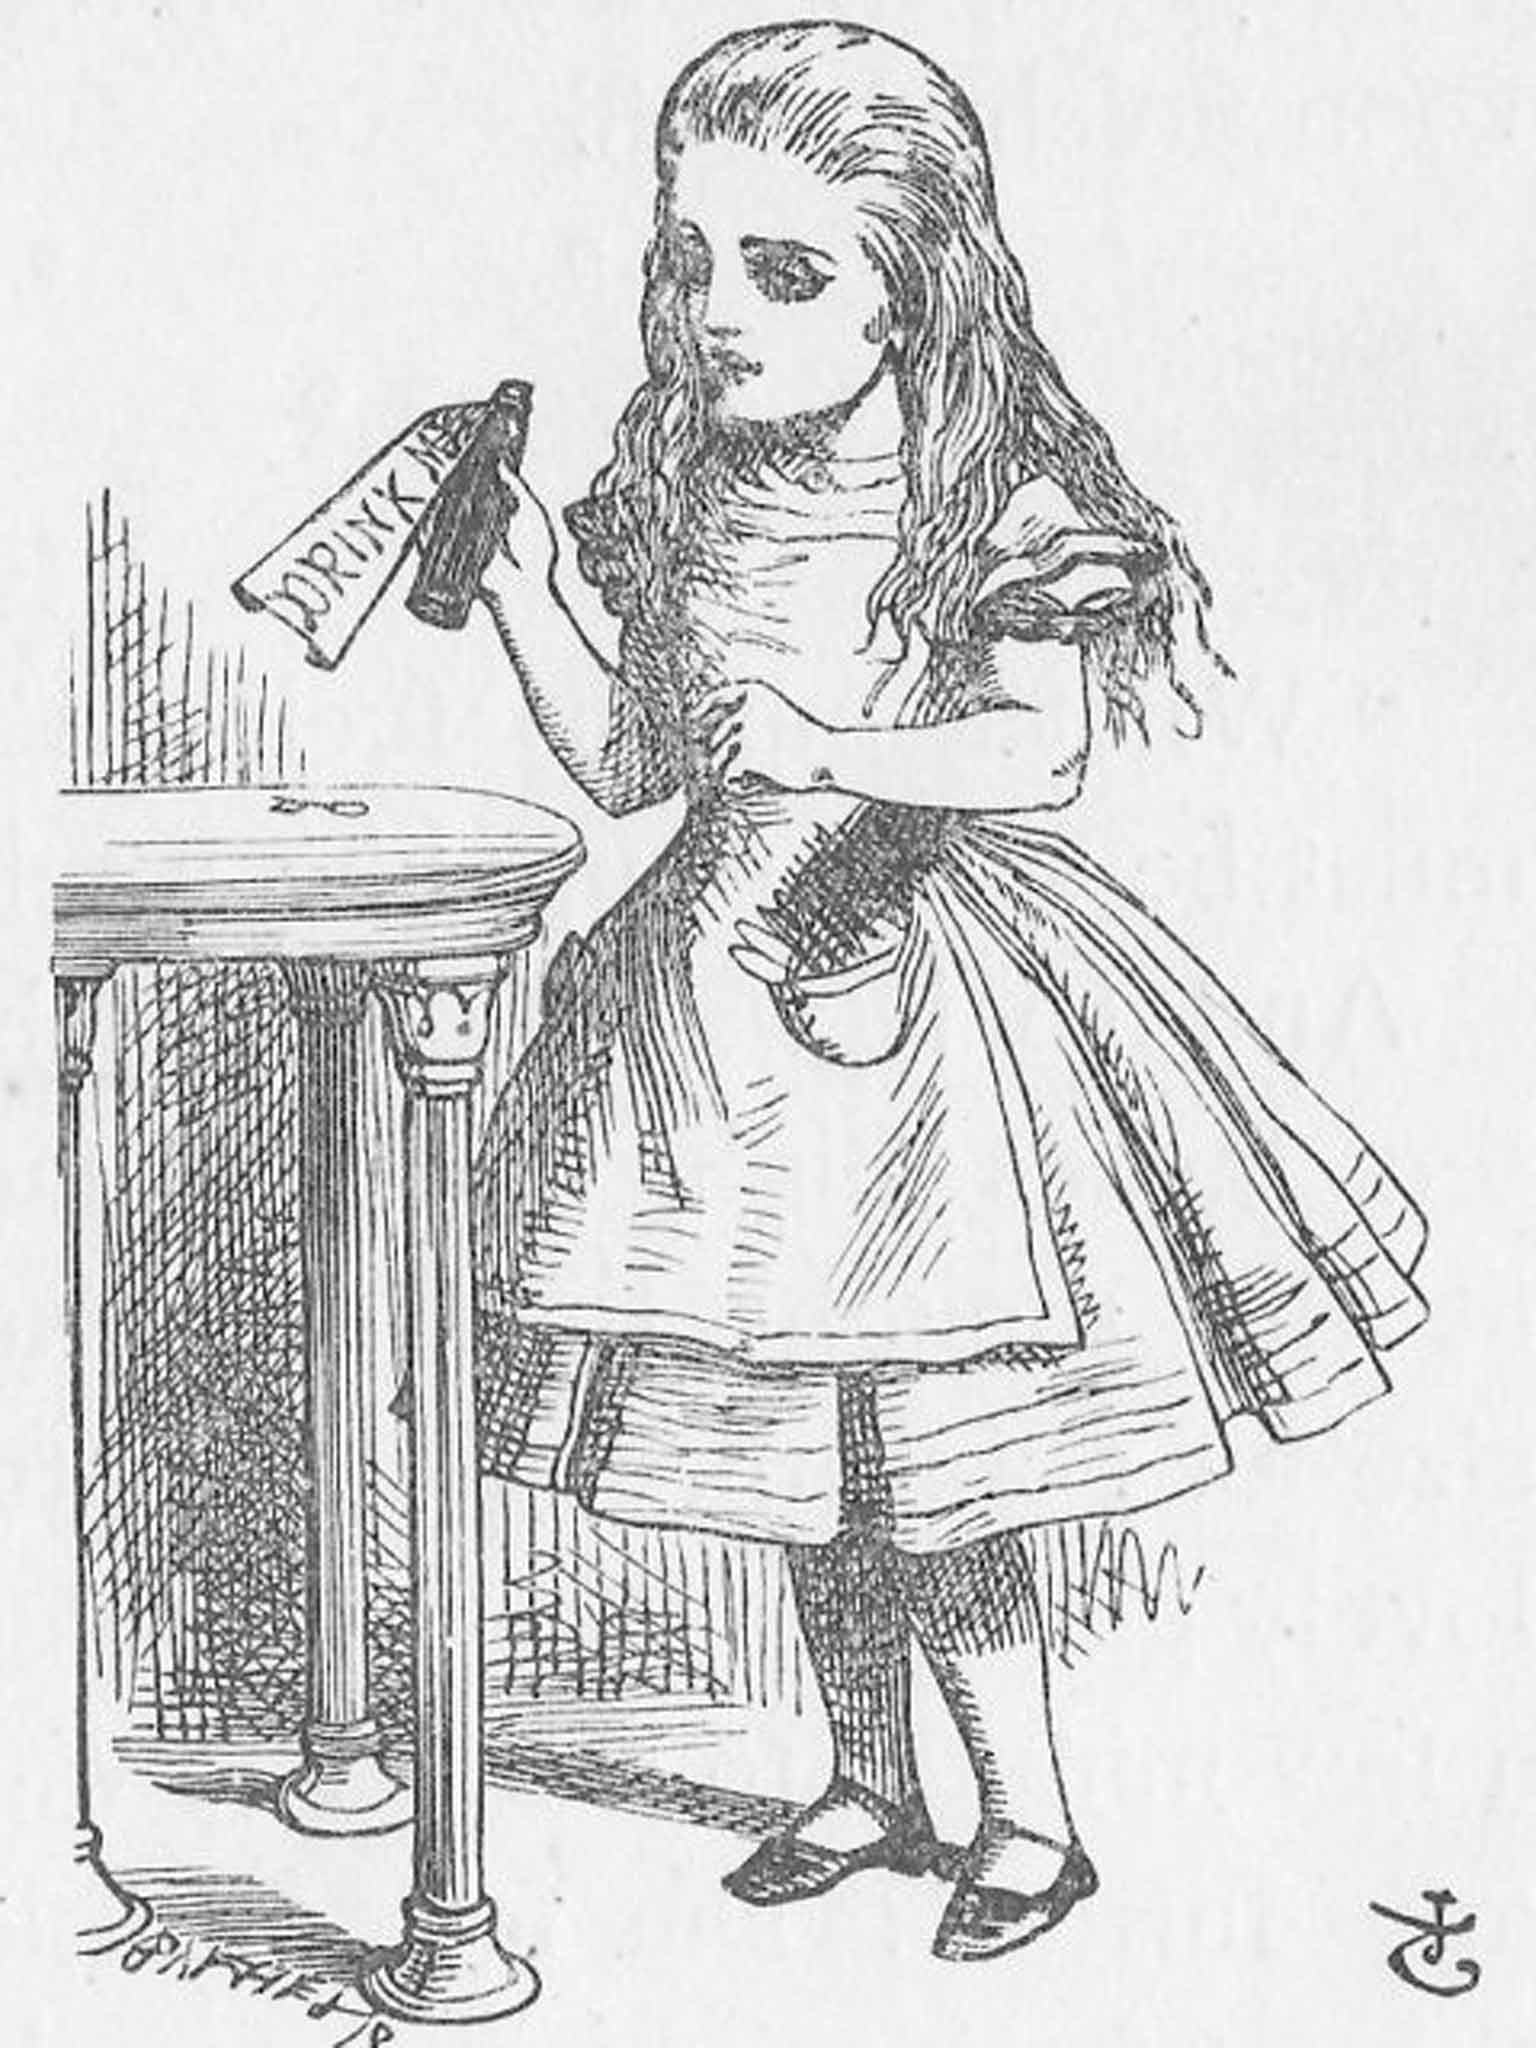 One of sir john tenniels drawings of alice